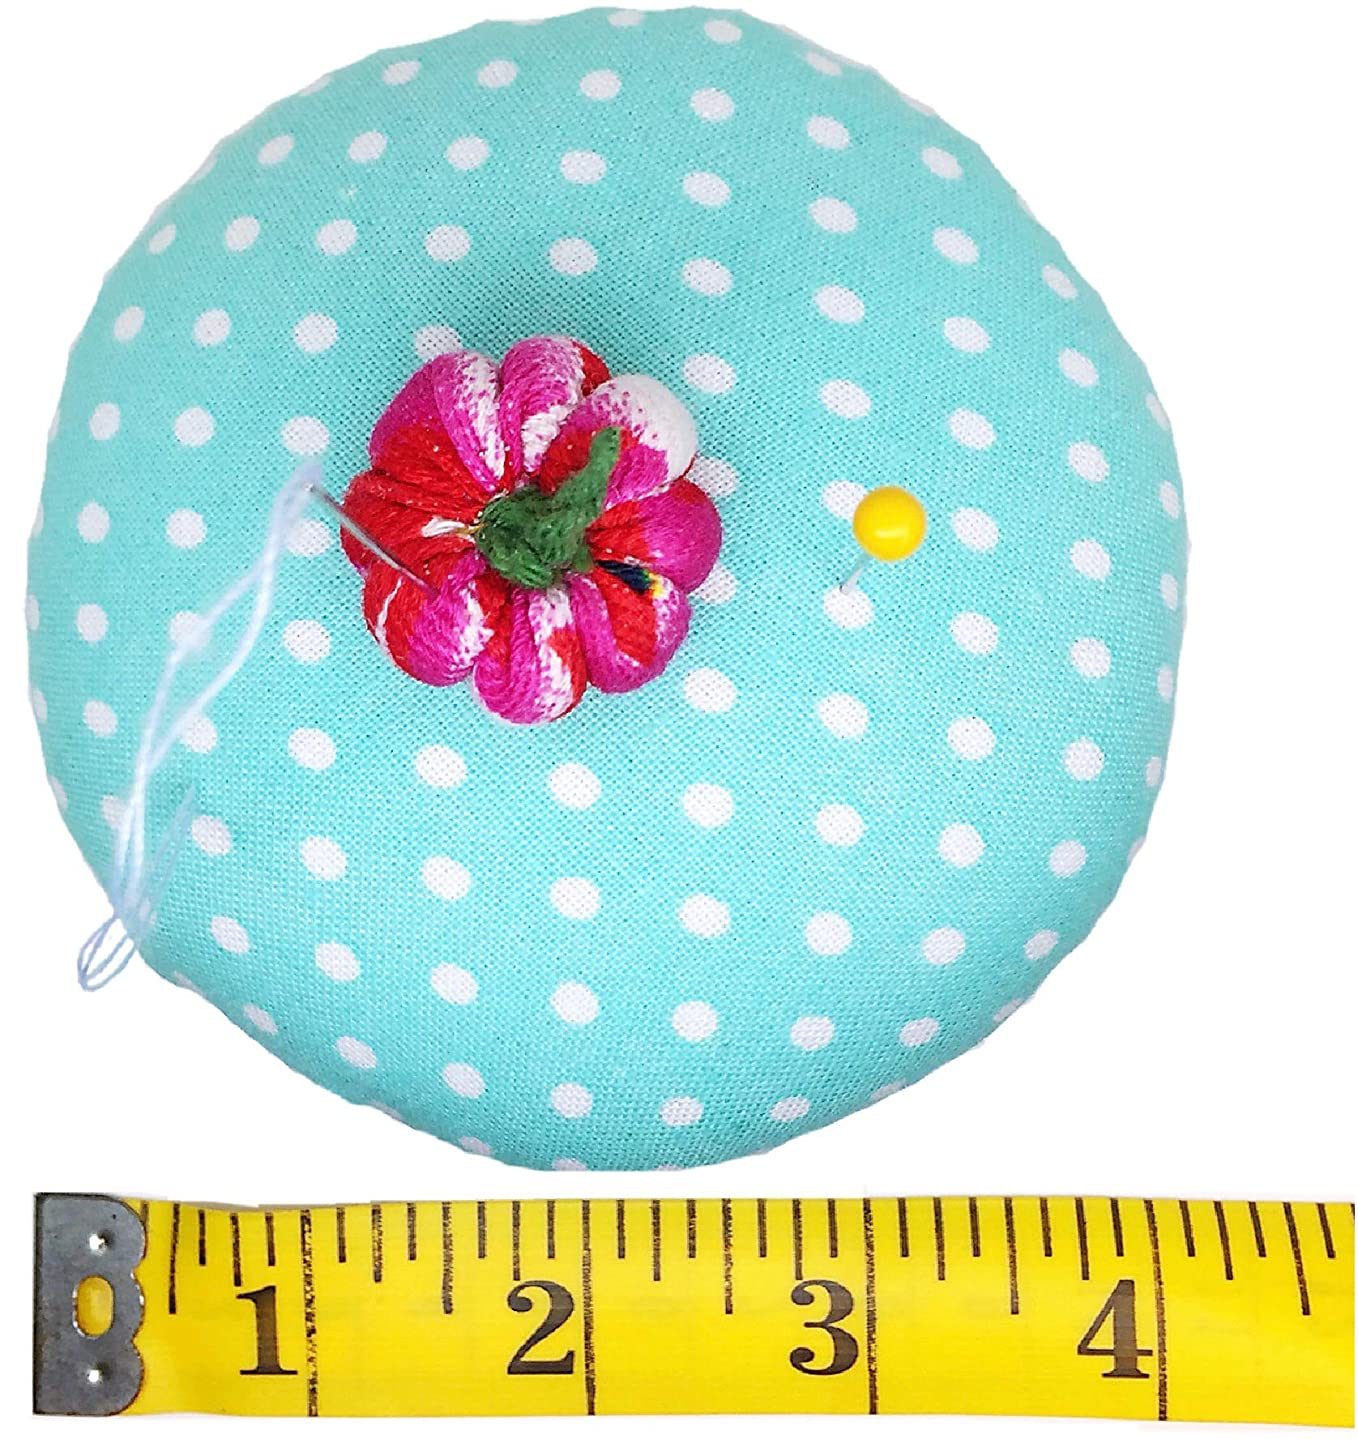 PeavyTailor Emery Pin Cushion 10oz Extra Large Keep Needles Clean and Sharp Needle Storage Organizer - Little Pumpkin